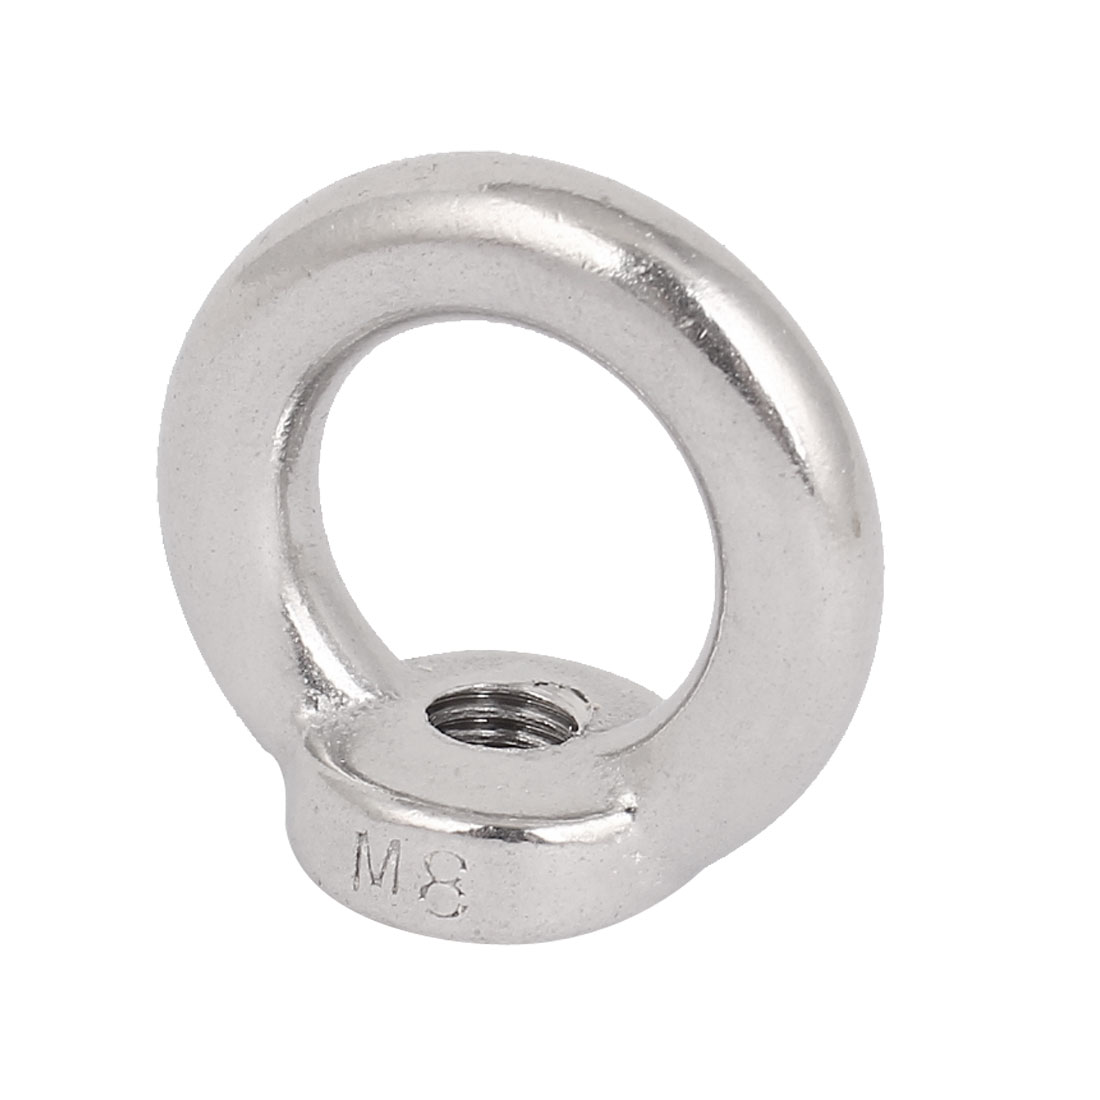 M8 Thread Dia 304 Stainless Steel Round Lifting Eye Nuts Ring Silver Tone